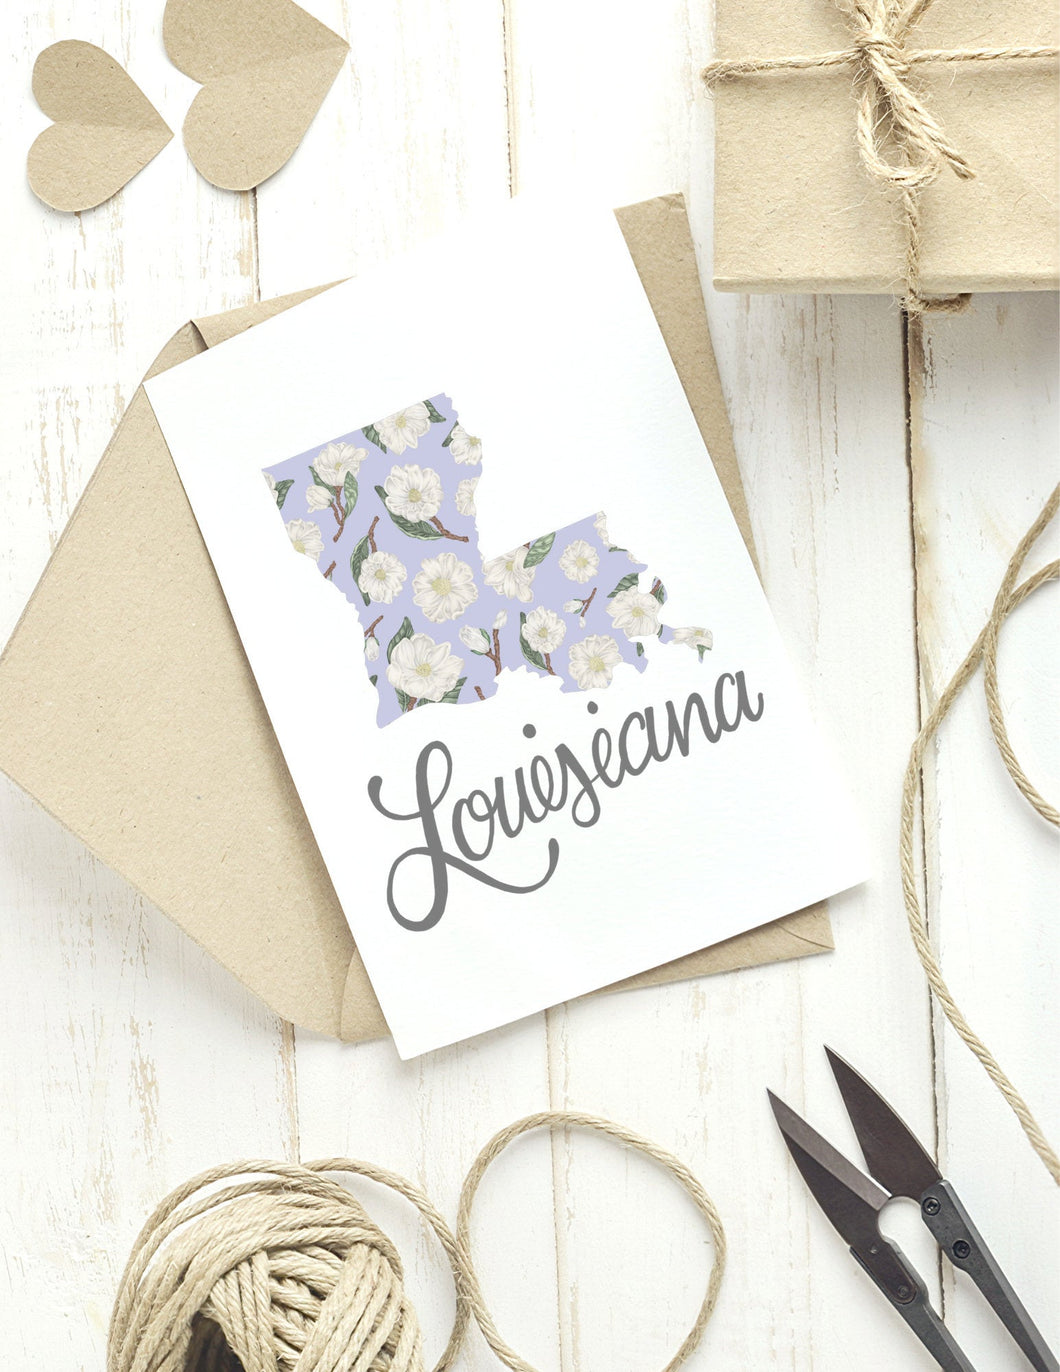 Louisiana State Map Folded Card